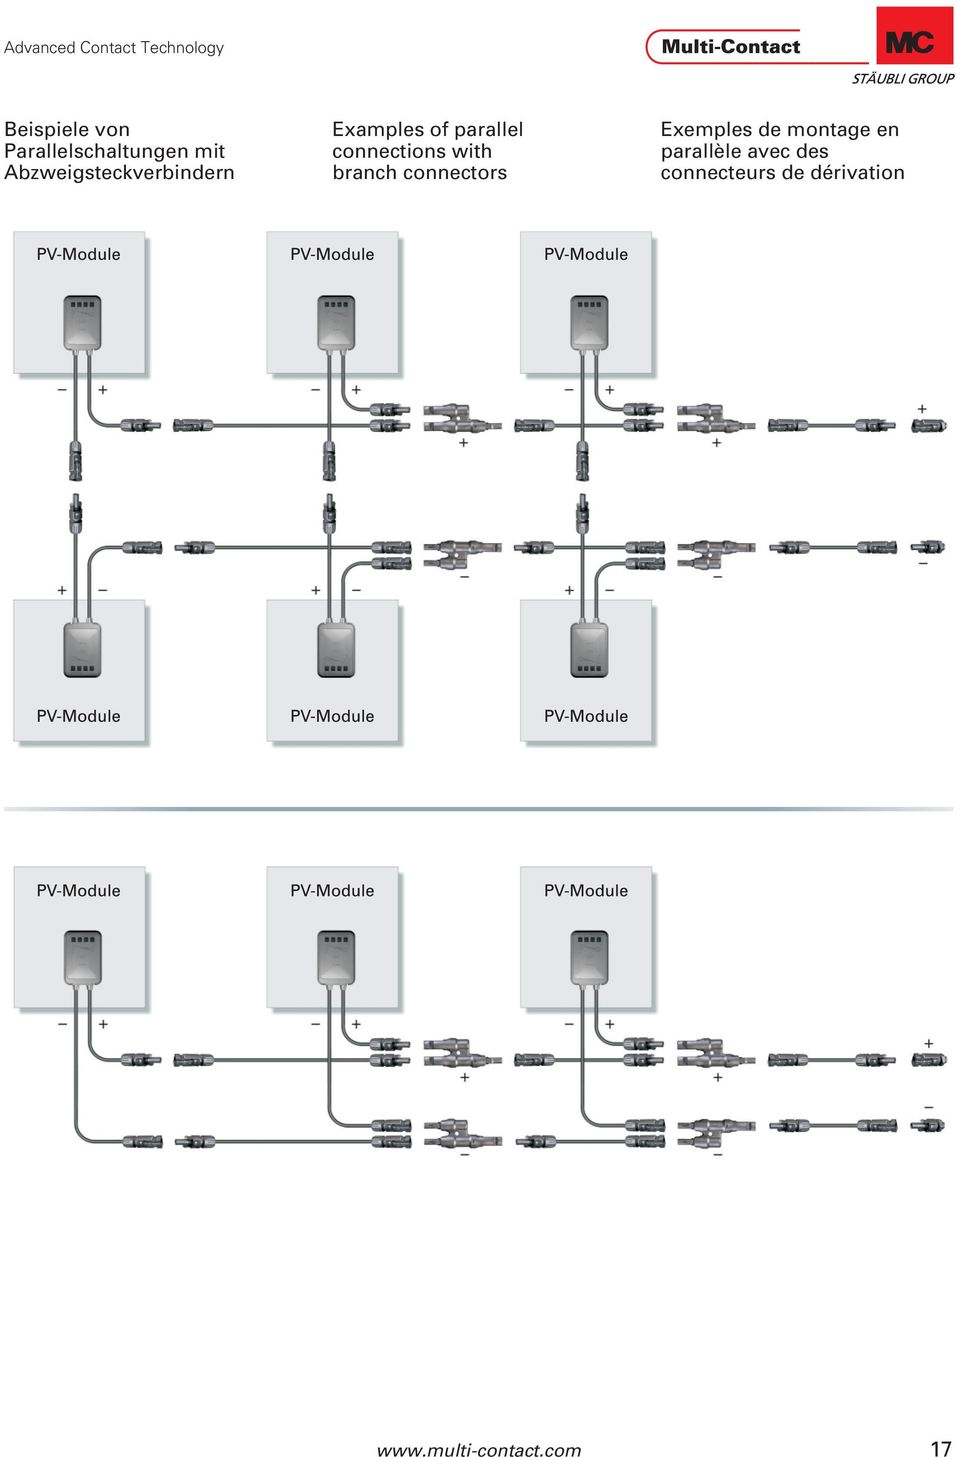 connections with branch connectors Exemples de